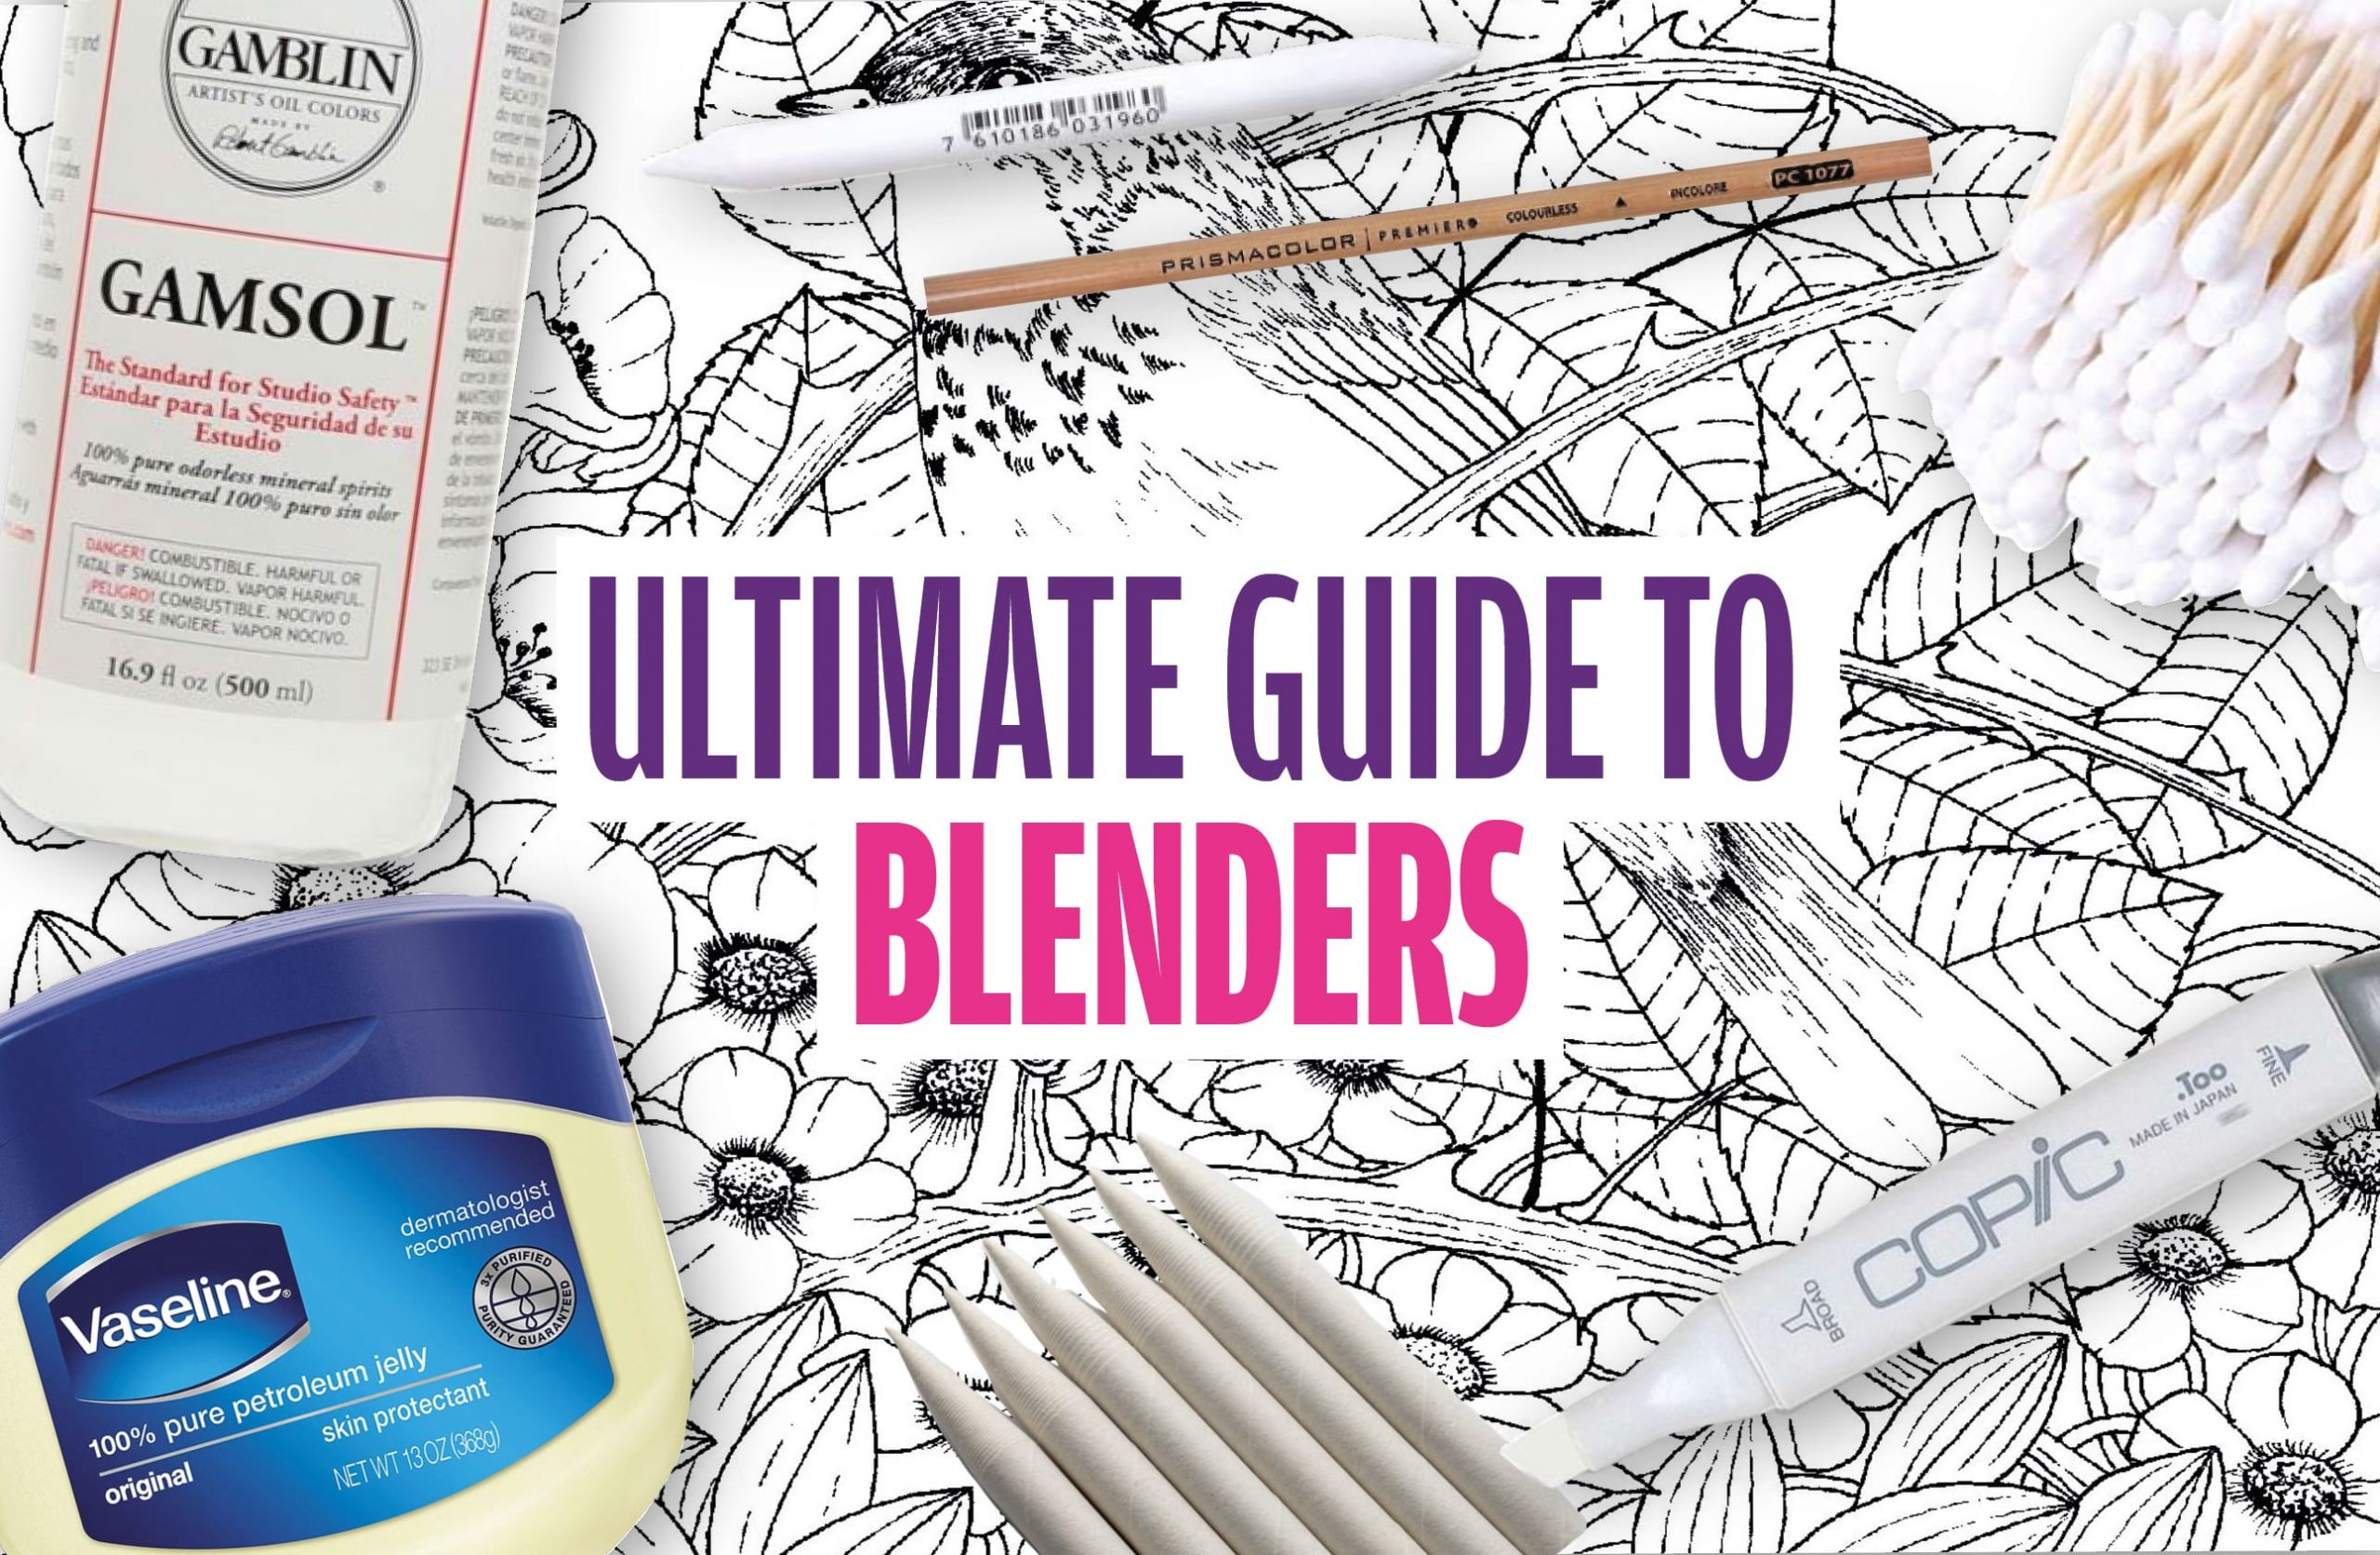 Ultimate Guide to Blenders